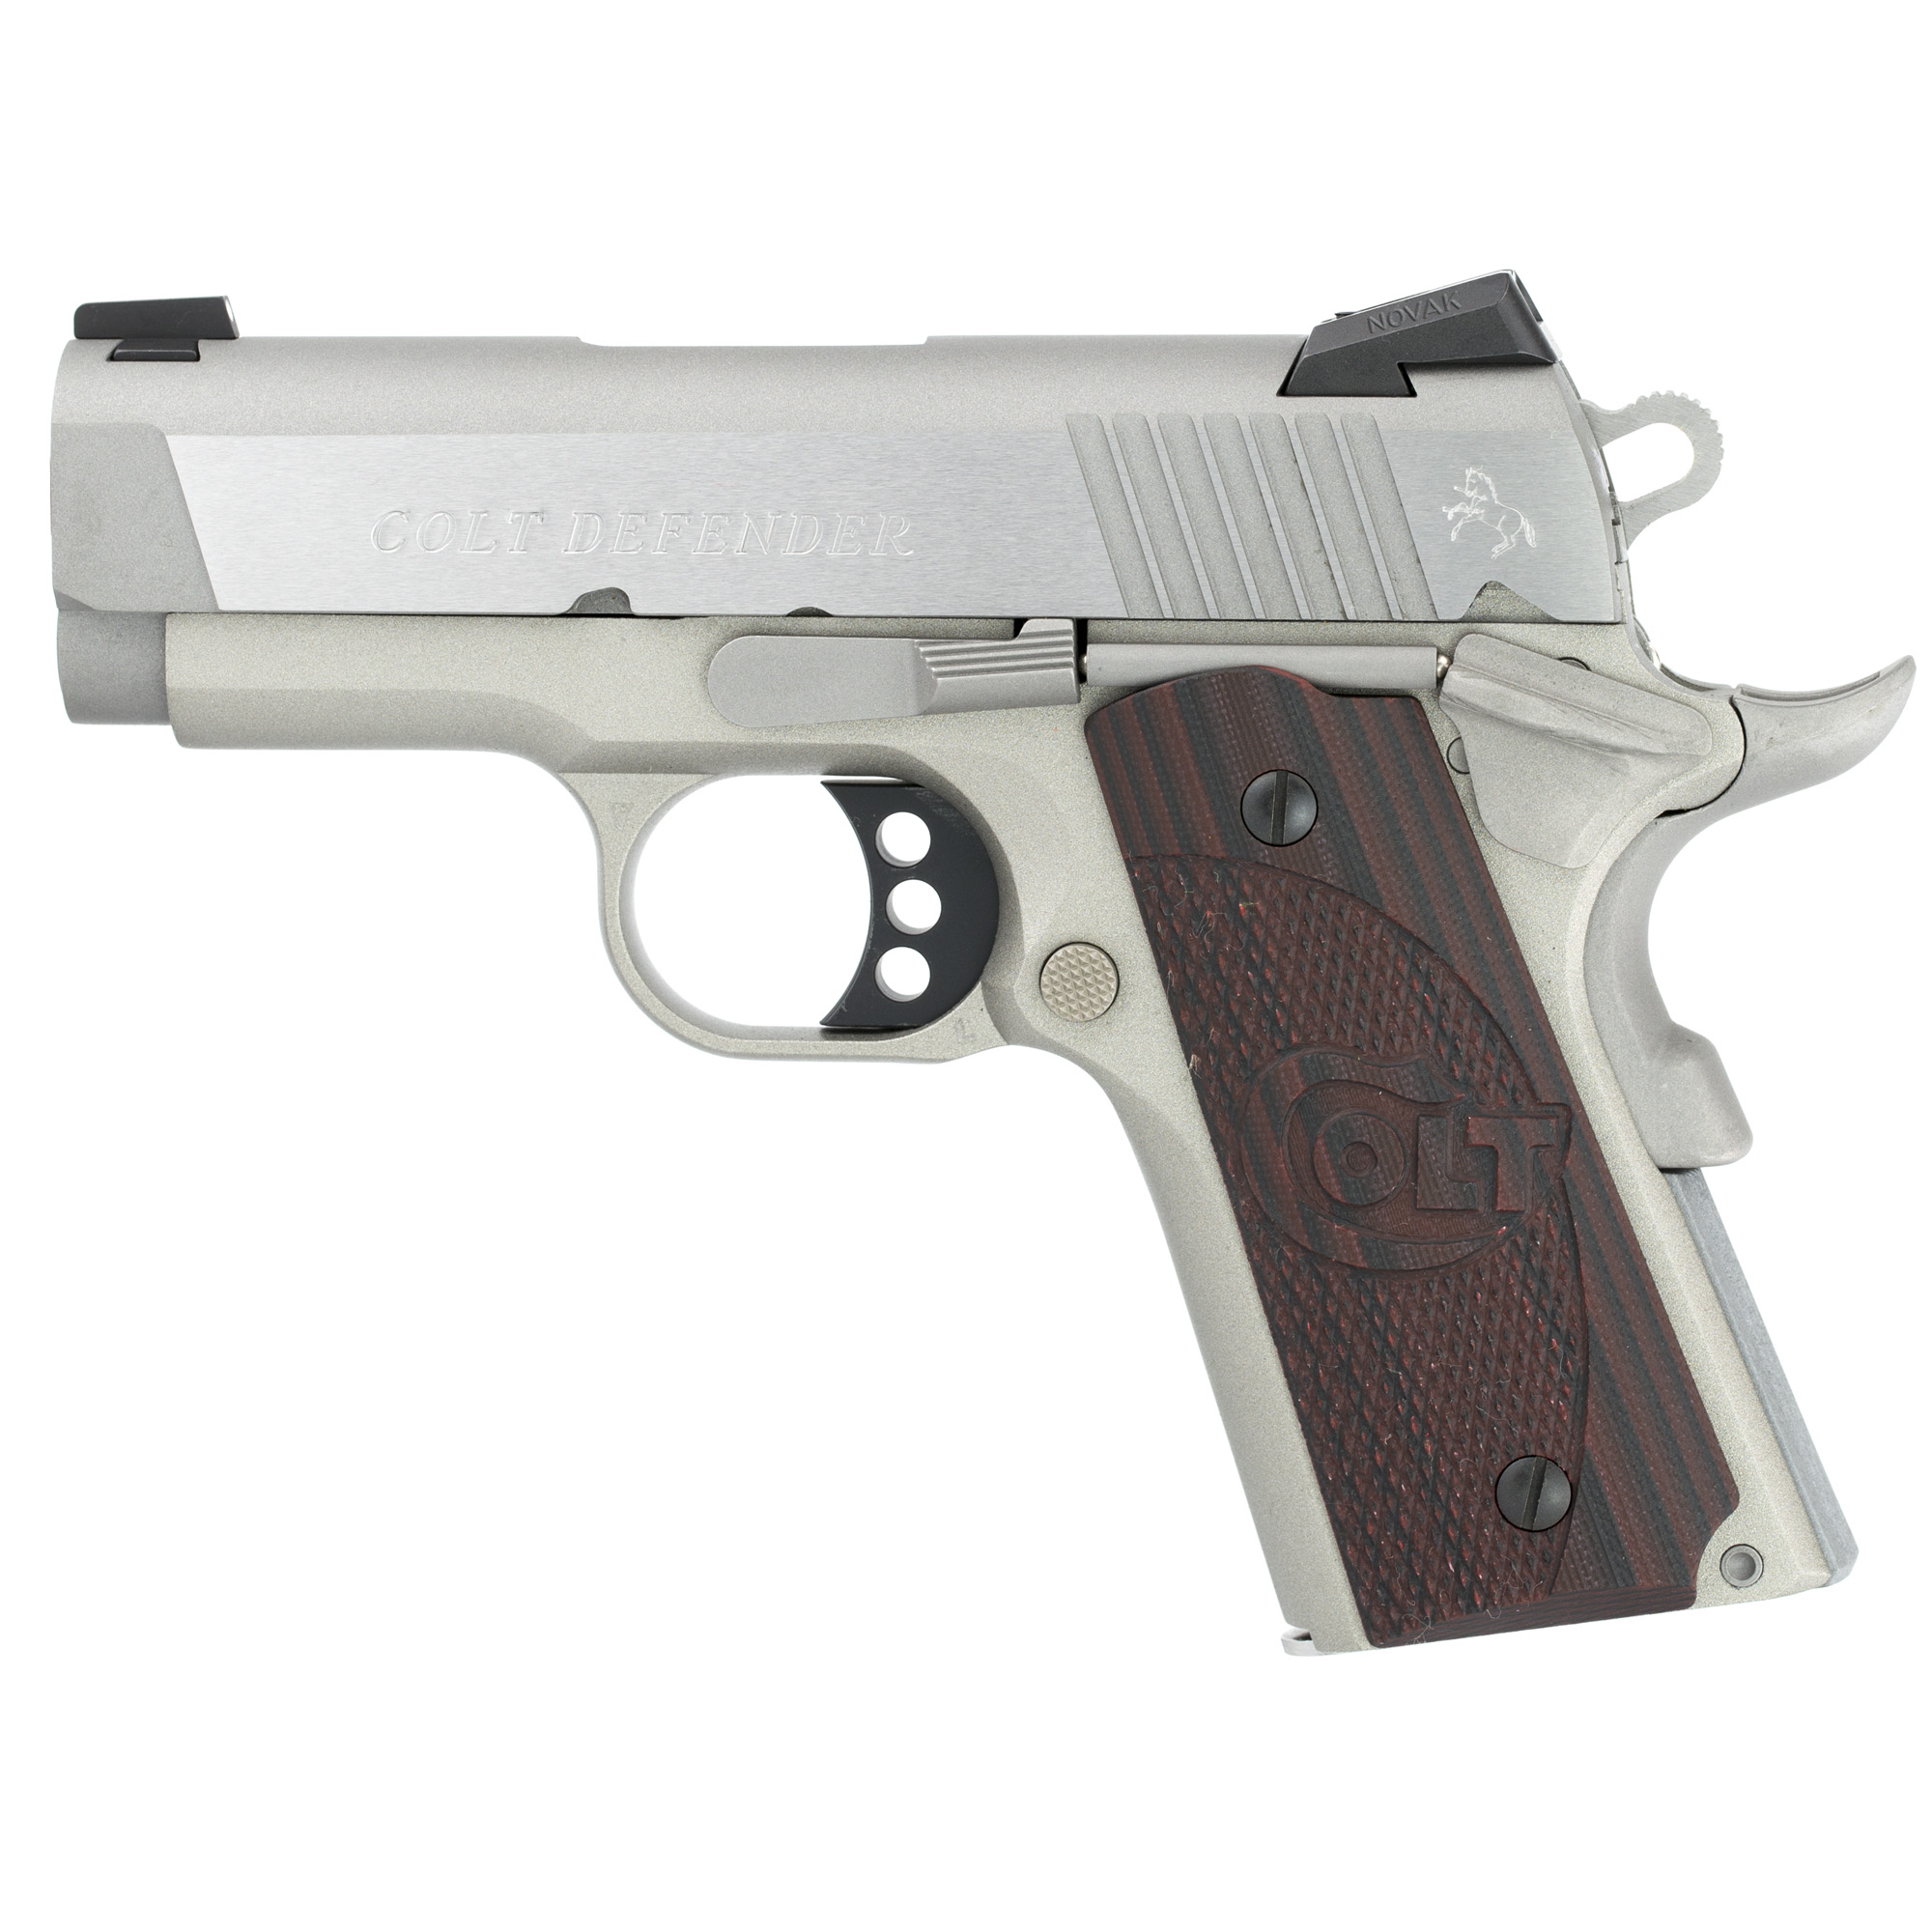 "The Colt Defender(TM) pistol is a carry-ready 1911 in a compact size. The Lightweight Aluminum Frame is finished in a Matte Stainless Steel finish"" topped with a Forged Stainless Steel slide for a pistol that looks as good as it conceals. Tactile G10 Grips and Upswept Beavertail Grip Safety make this small pistol very comfortable to shoot."